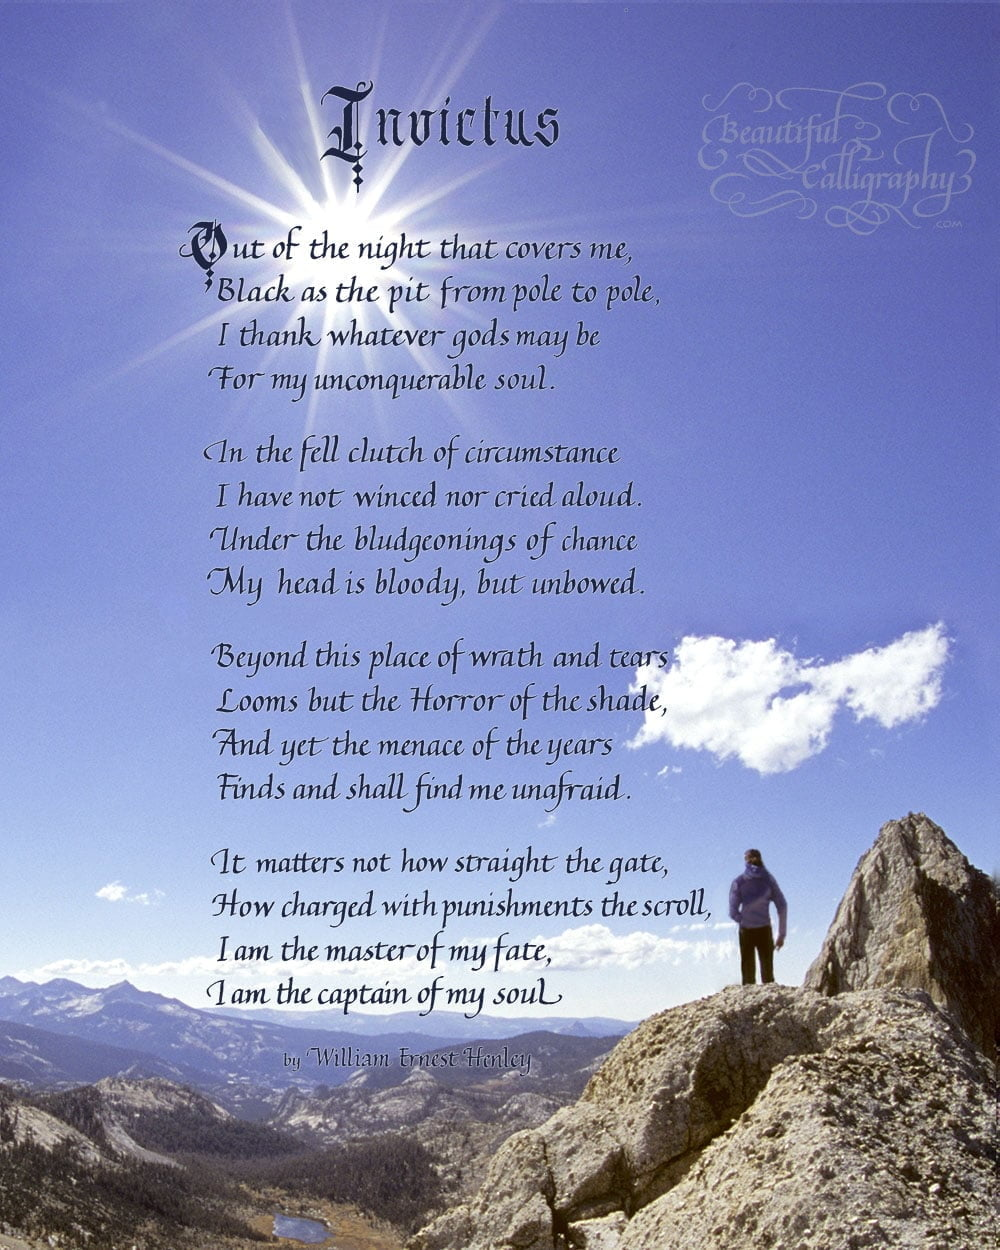 Invictus, Famous Poem honoring soldiers written in calligraphy on mountaintop background